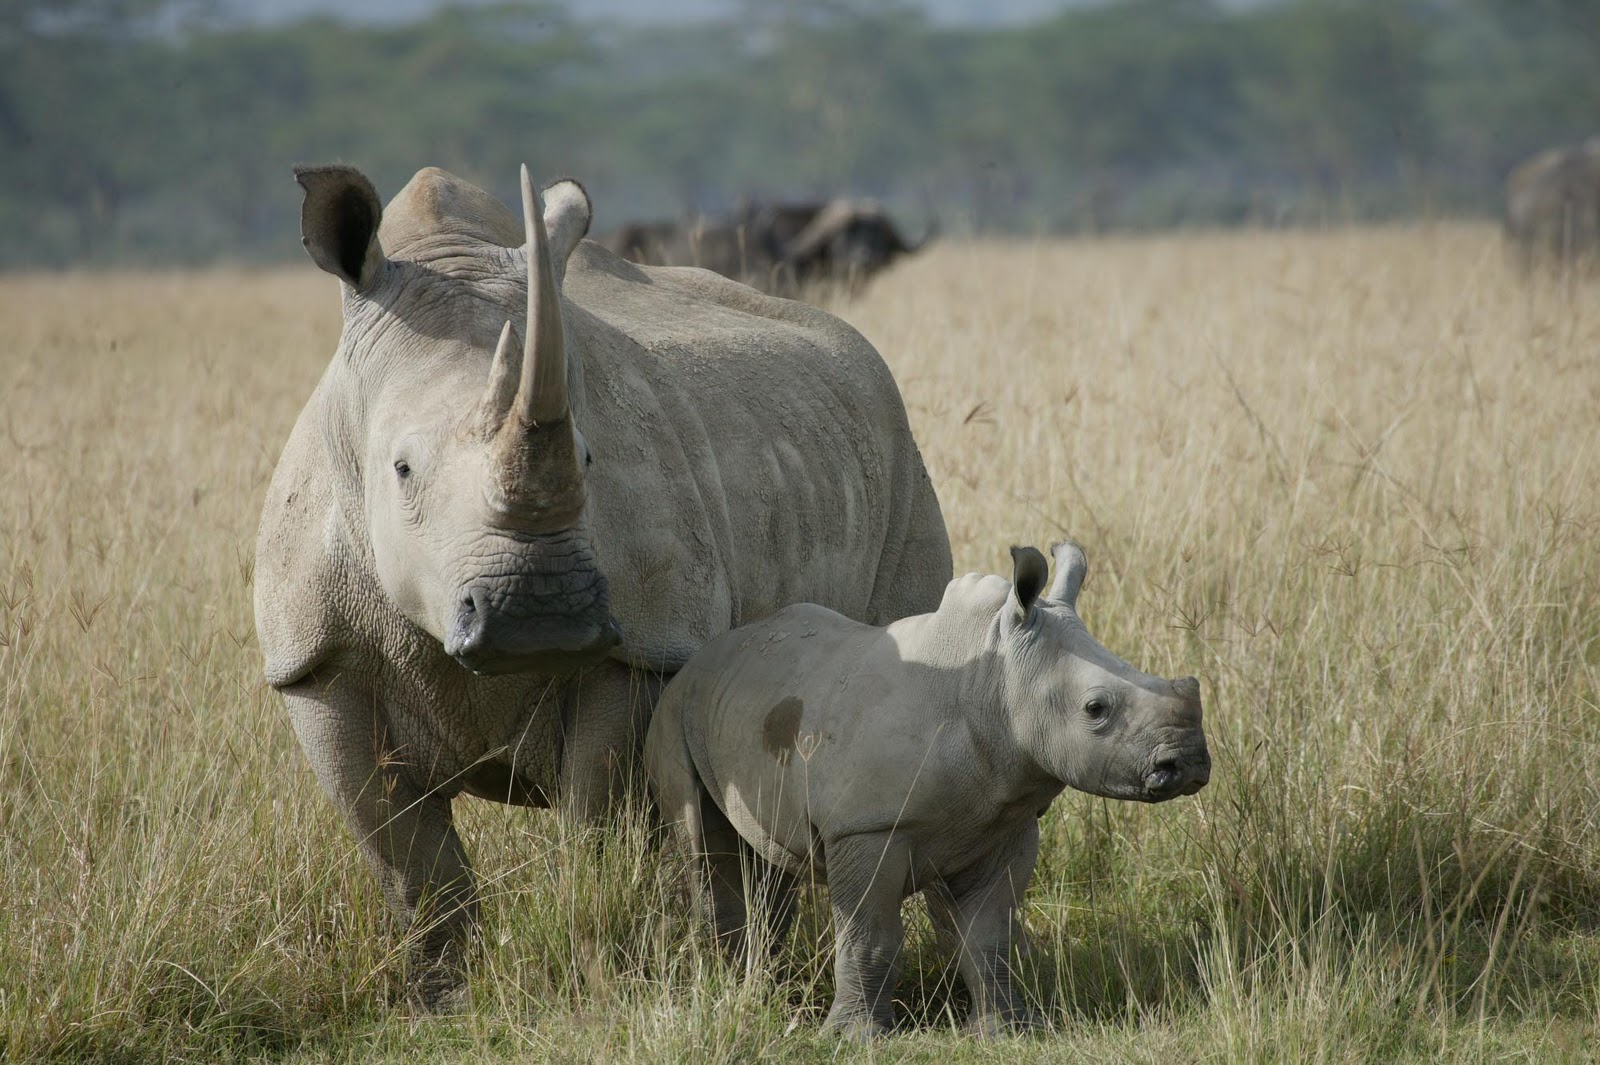 rhinoceros and world Improving security monitoring to protect rhinos from poaching improving local and international law enforcement to stop the illegal flow of rhino horn from africa to other regions of the world and promoting well-managed wildlife-based tourism experiences that will also provide additional funding for conservation efforts.